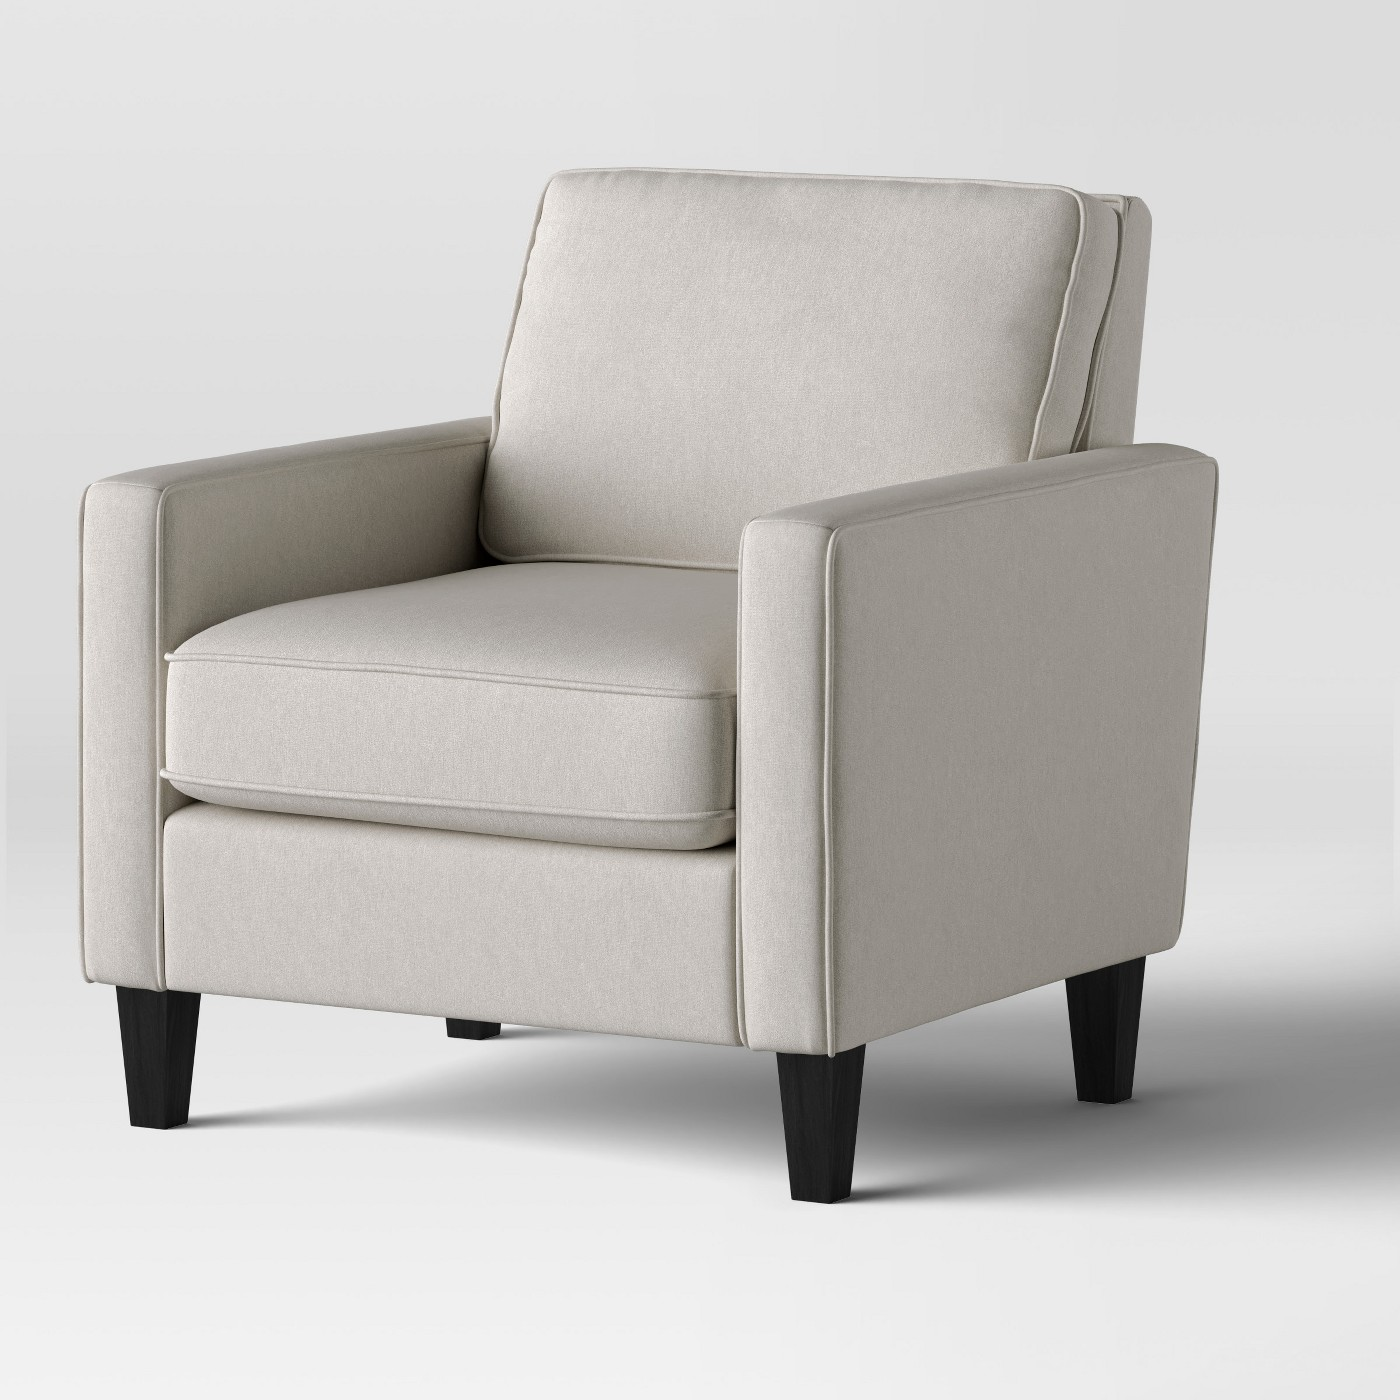 Elmhurst Modern Loose Back Cushion Chair Beige